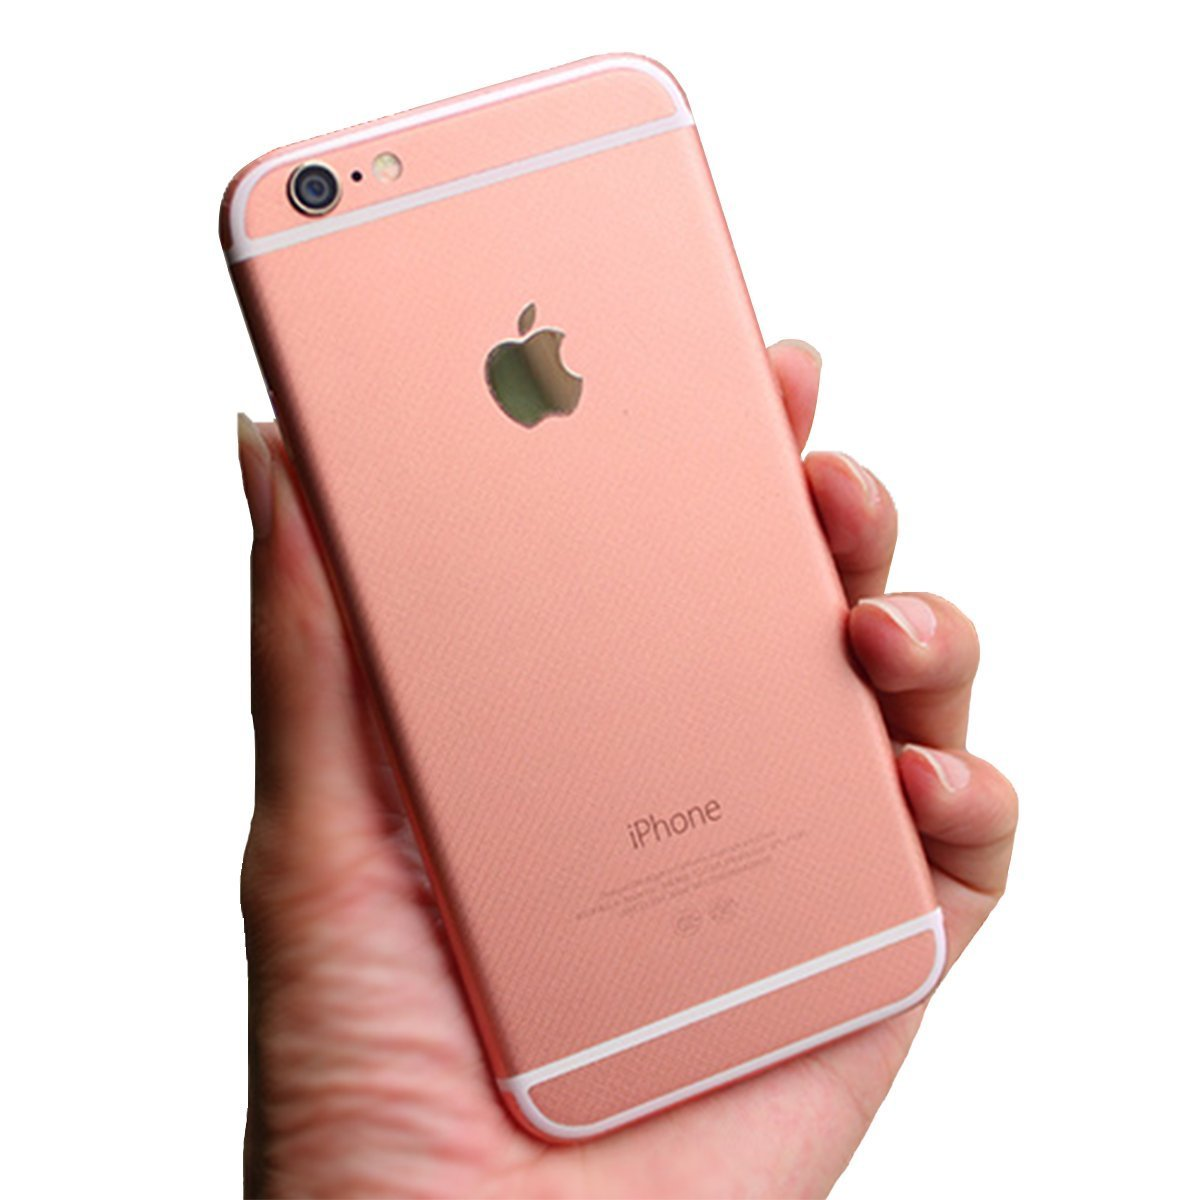 Apple Iphone 6s 32gb 4g Lte With Facetime Rose Gold